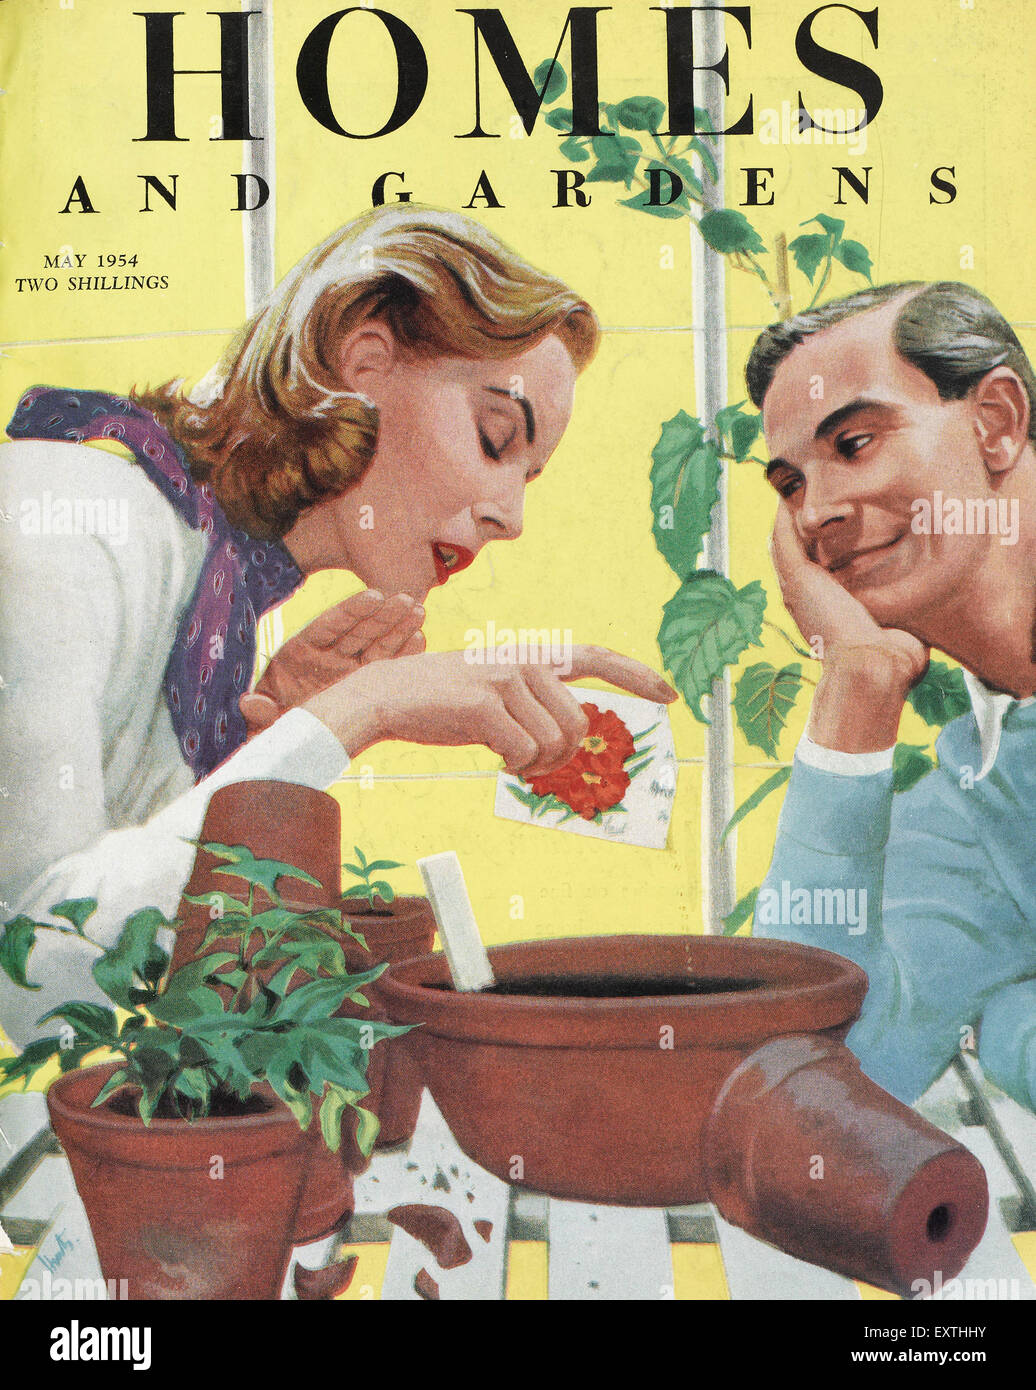 1950s UK Homes and Gardens Magazine Cover - Stock Image